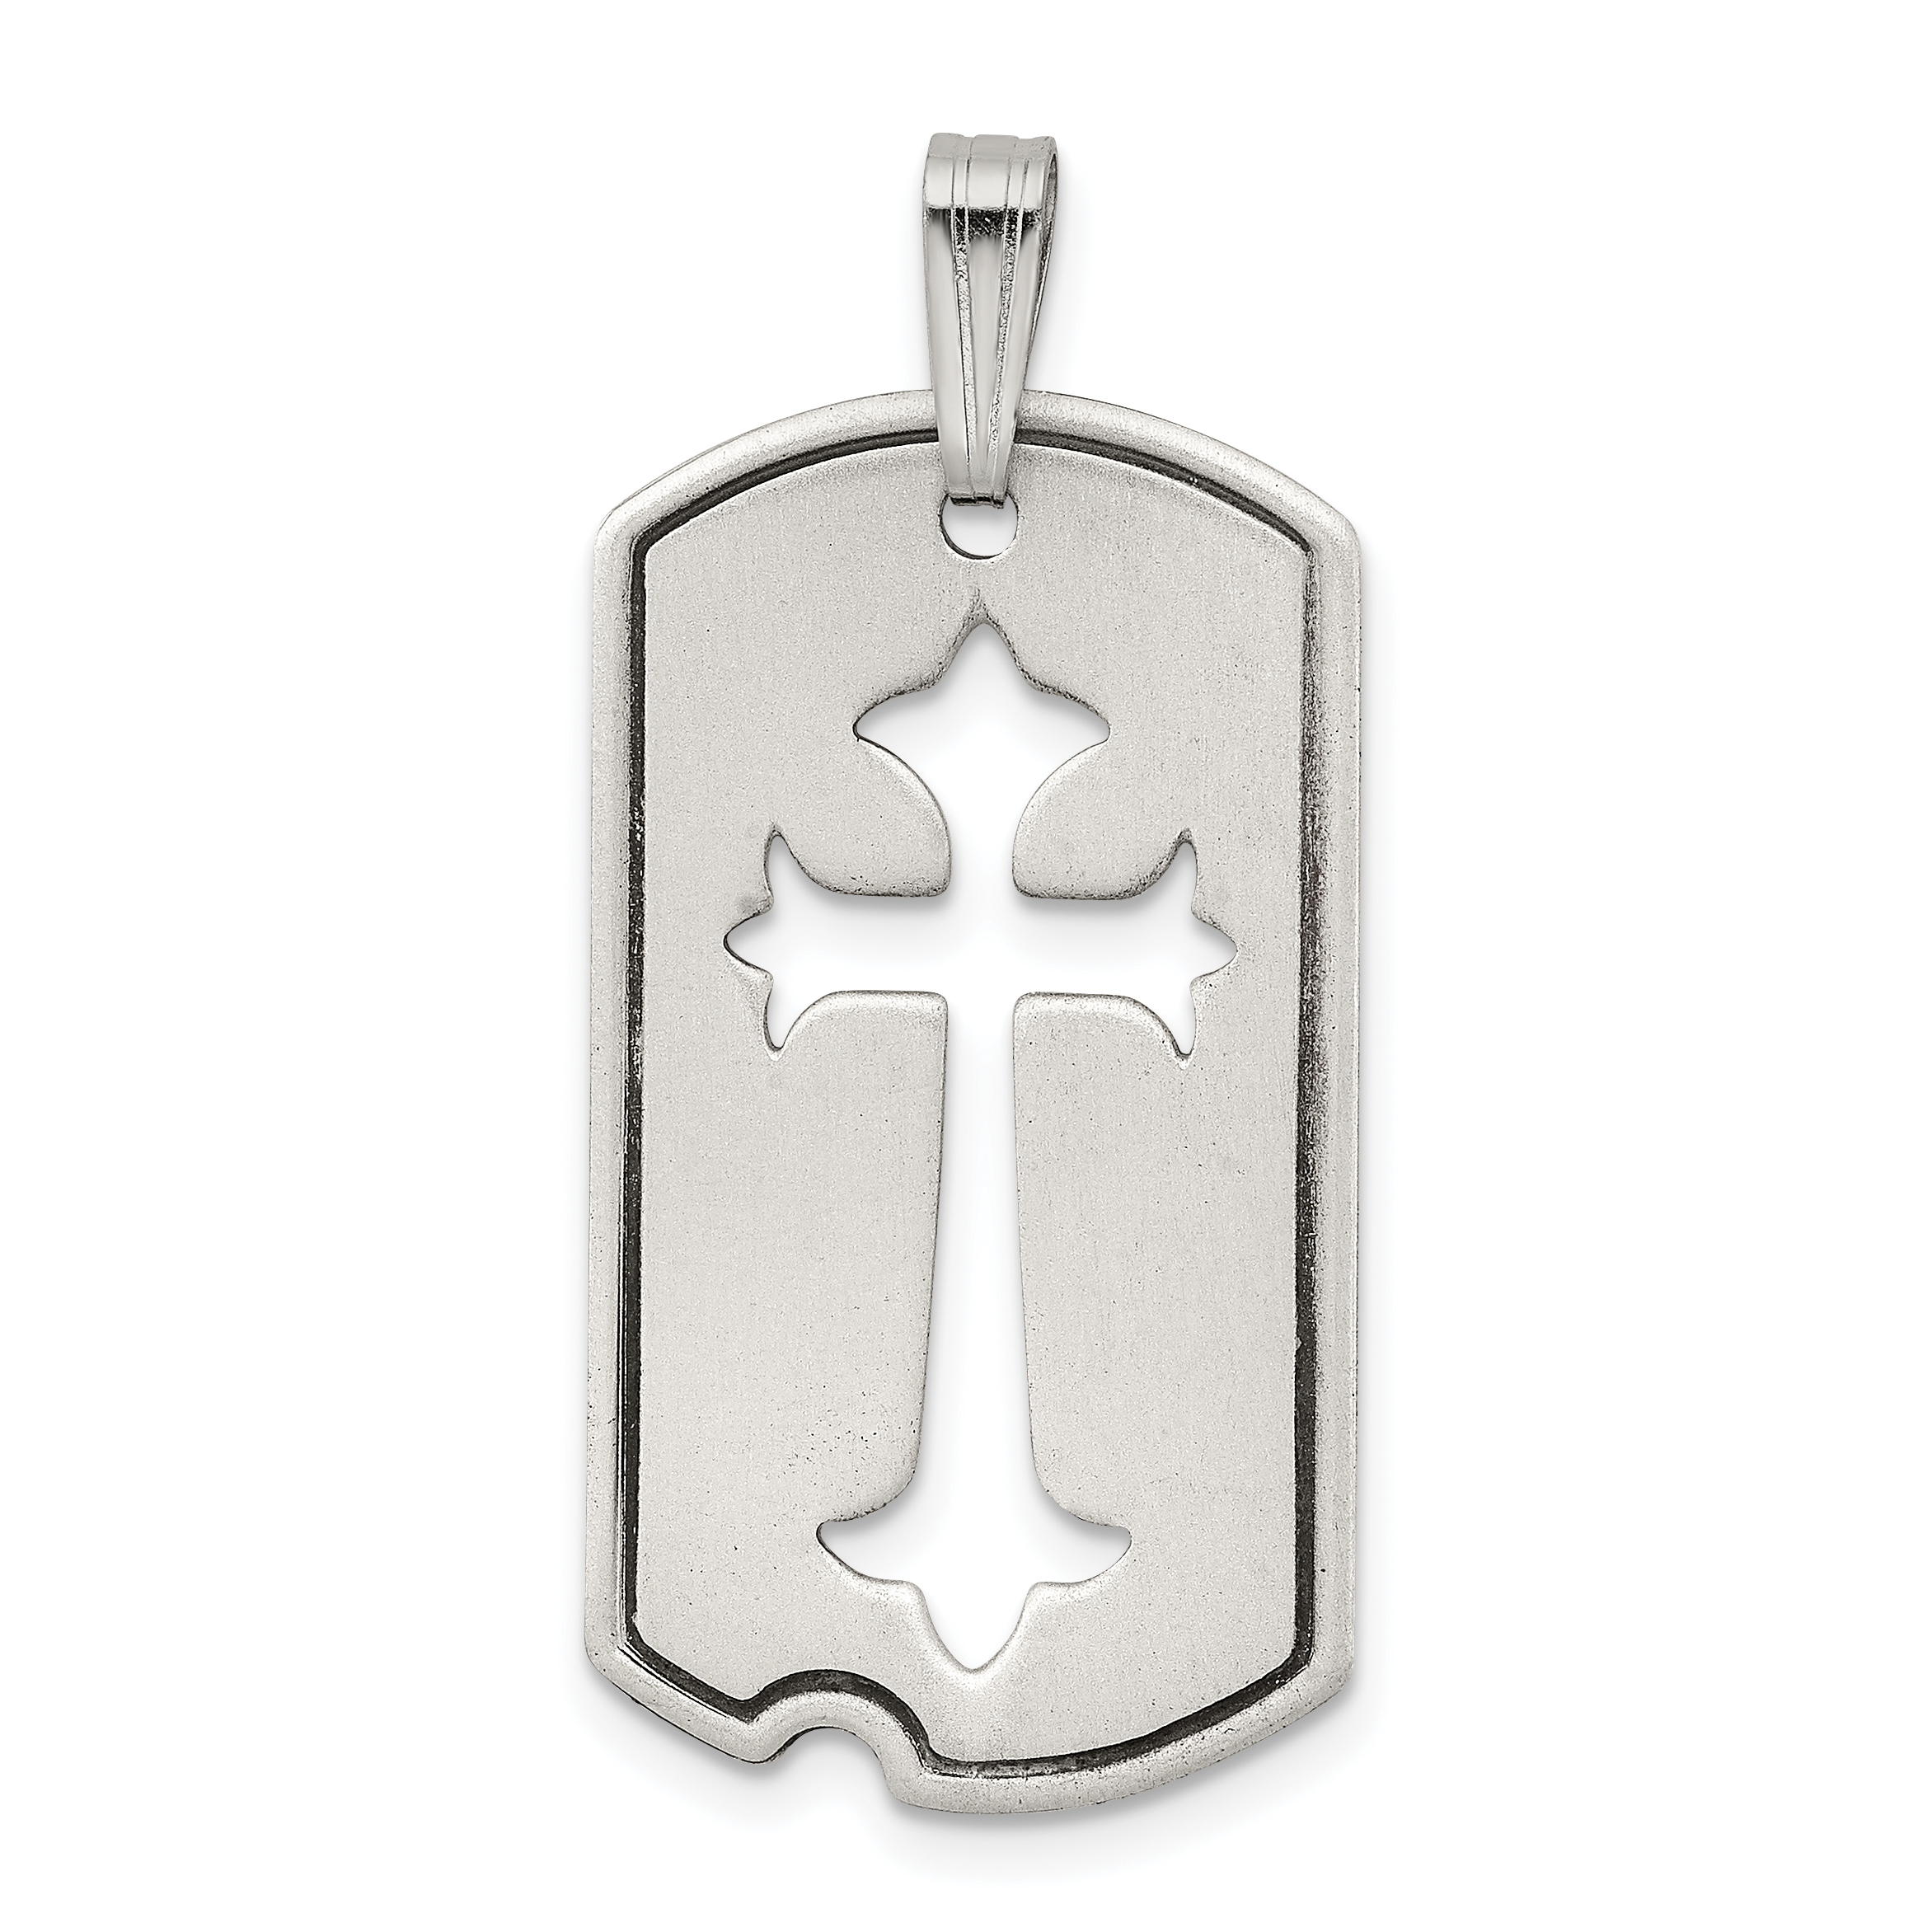 Sterling silver eastern orthodox cross charm weight grams sterling silver satin antiqued dog tag with cut out cross pendant weight 336 grams buycottarizona